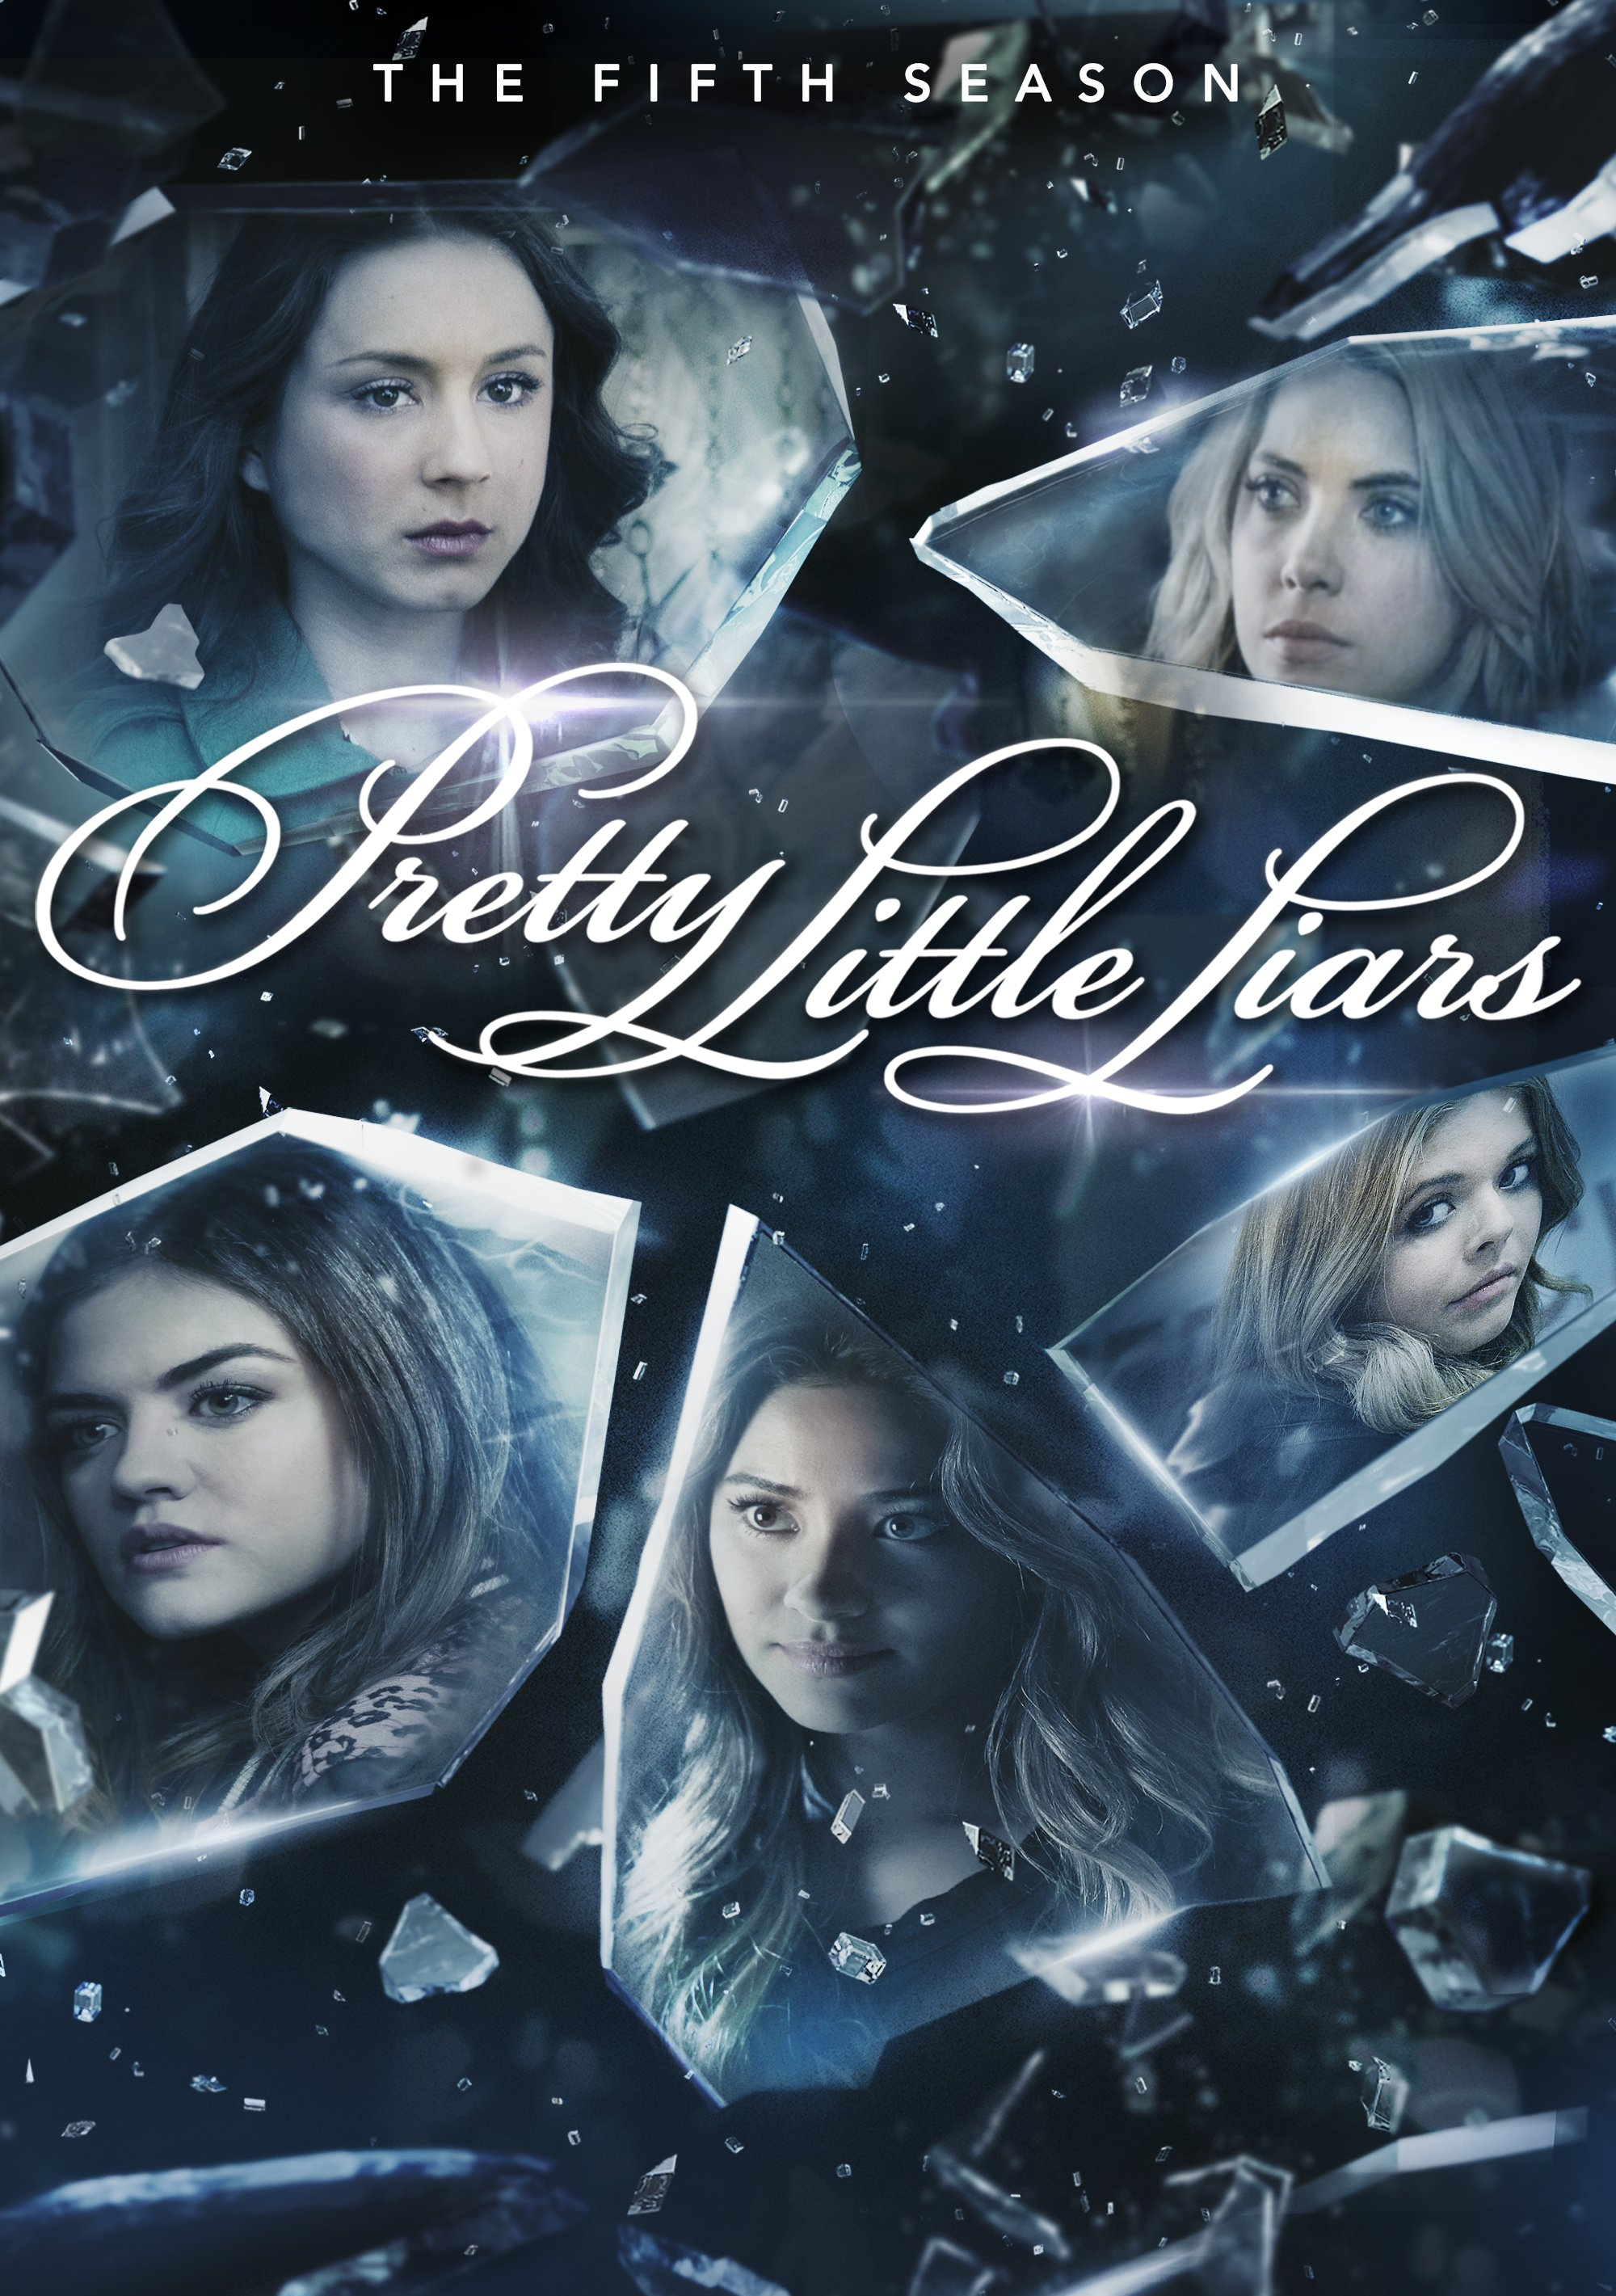 Pretty Little Liars: Season 5 Episode 25 - Welcome to the Dollhouse